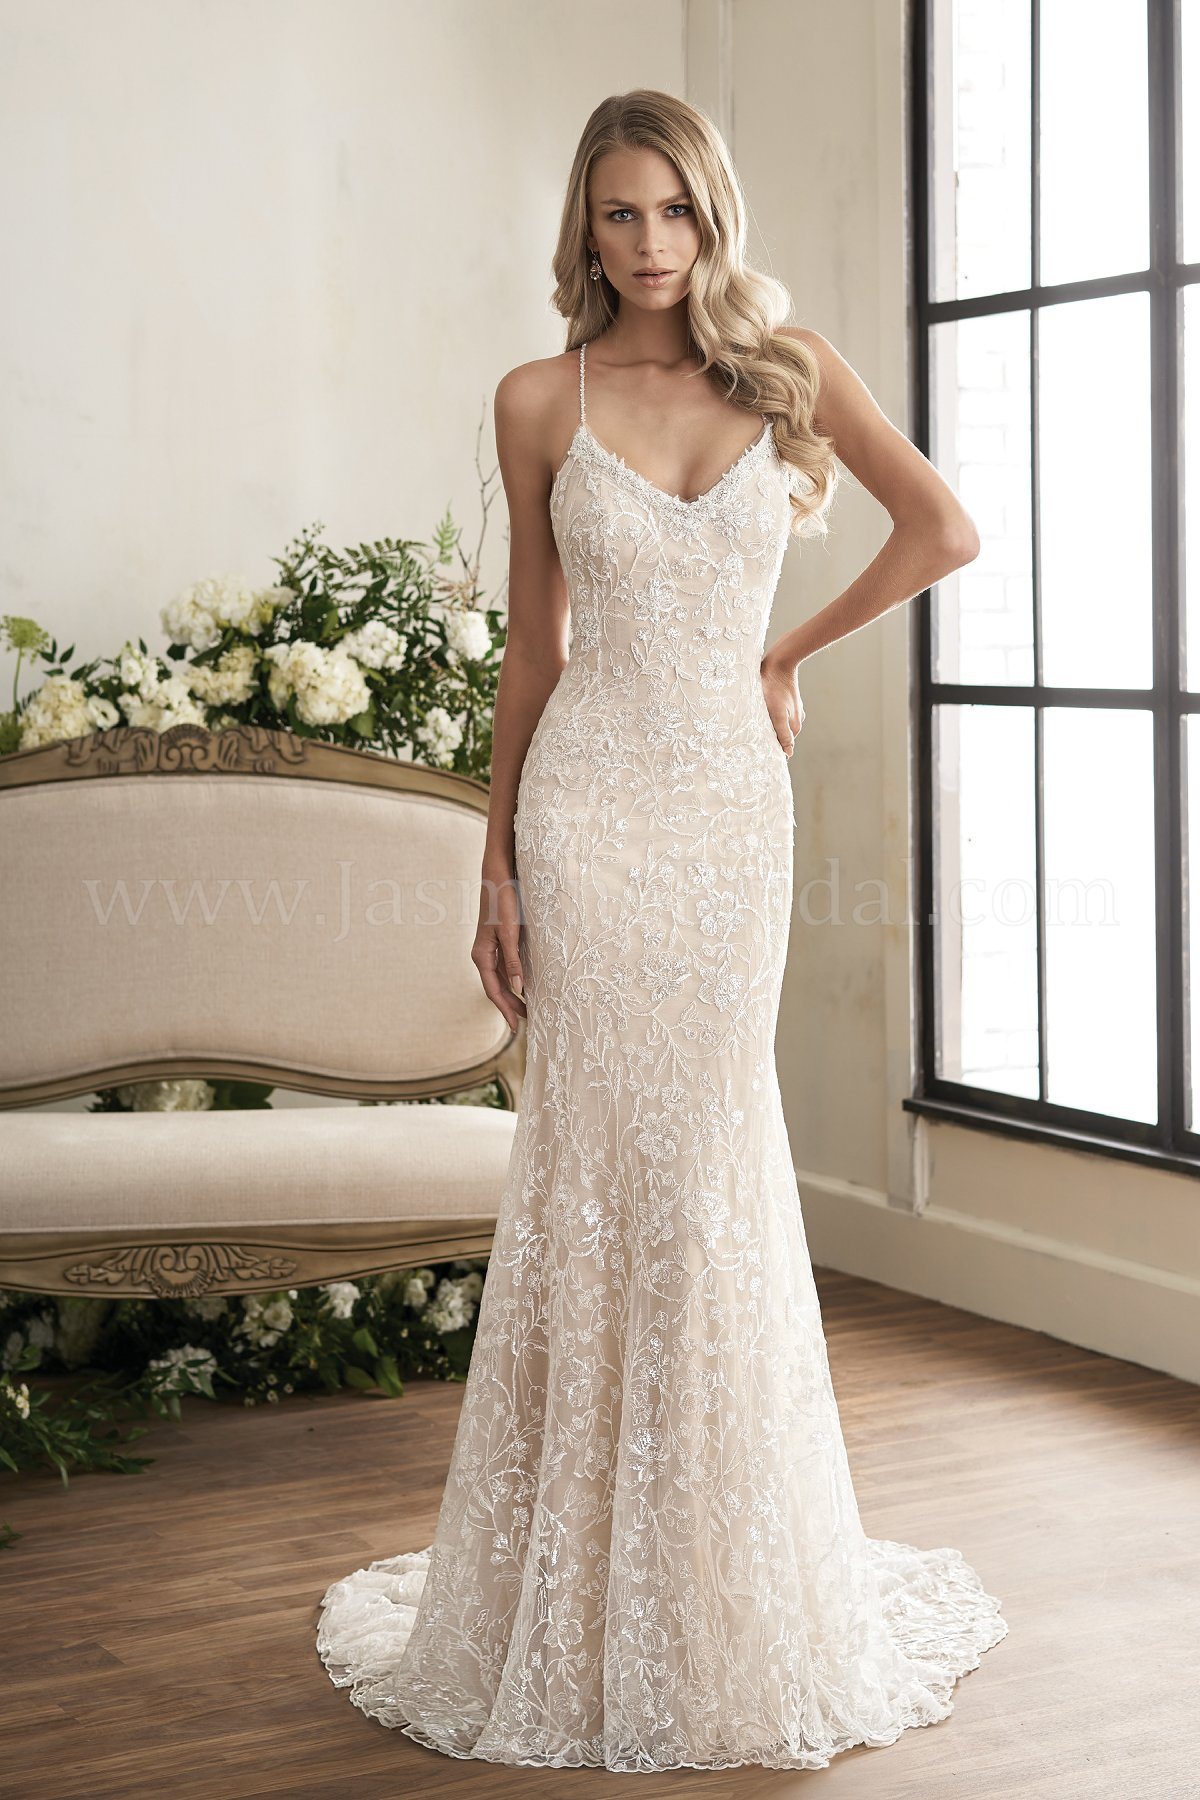 Lightweight Beach Wedding Dresses